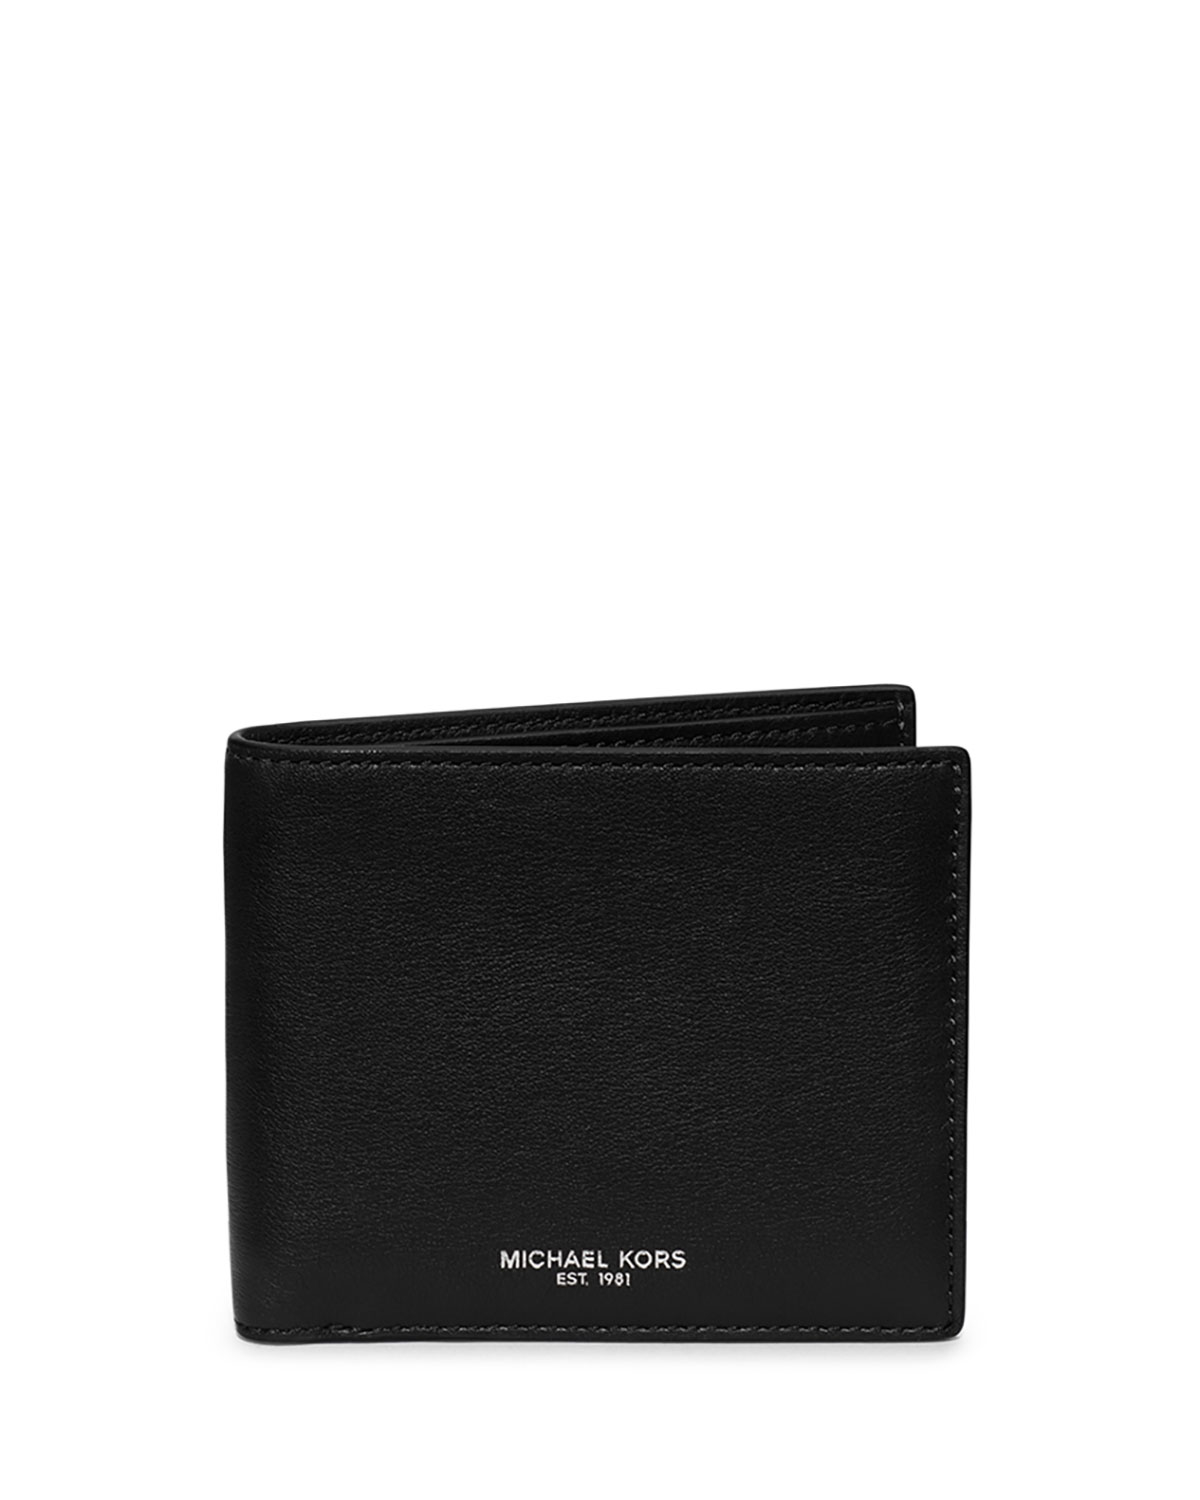 e6e61fa709805 Mens Wallets Michael Kors Best Photo Wallet Justiceforkenny. Mens Wallets  Michael Kors Jet Set Slim Billfold Wallet Brown ...